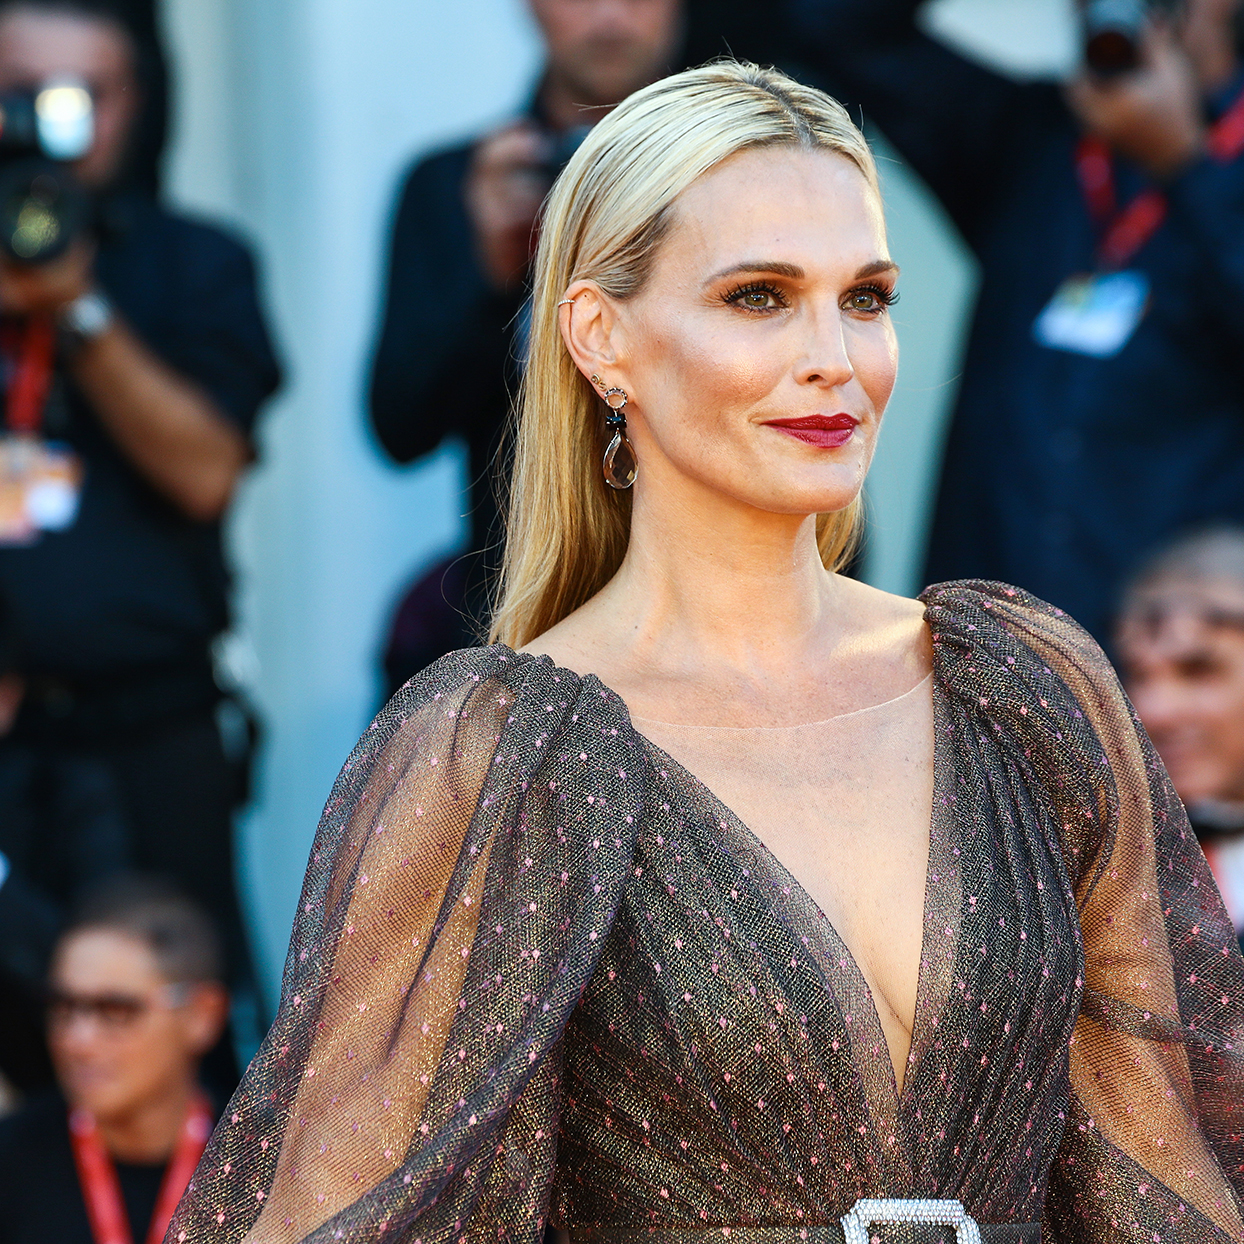 Molly Sims walks the red carpet ahead of the The Laundromat screening during the 76th Venice Film Festival at Sala Grande on September 01, 2019 in Venice, Italy.